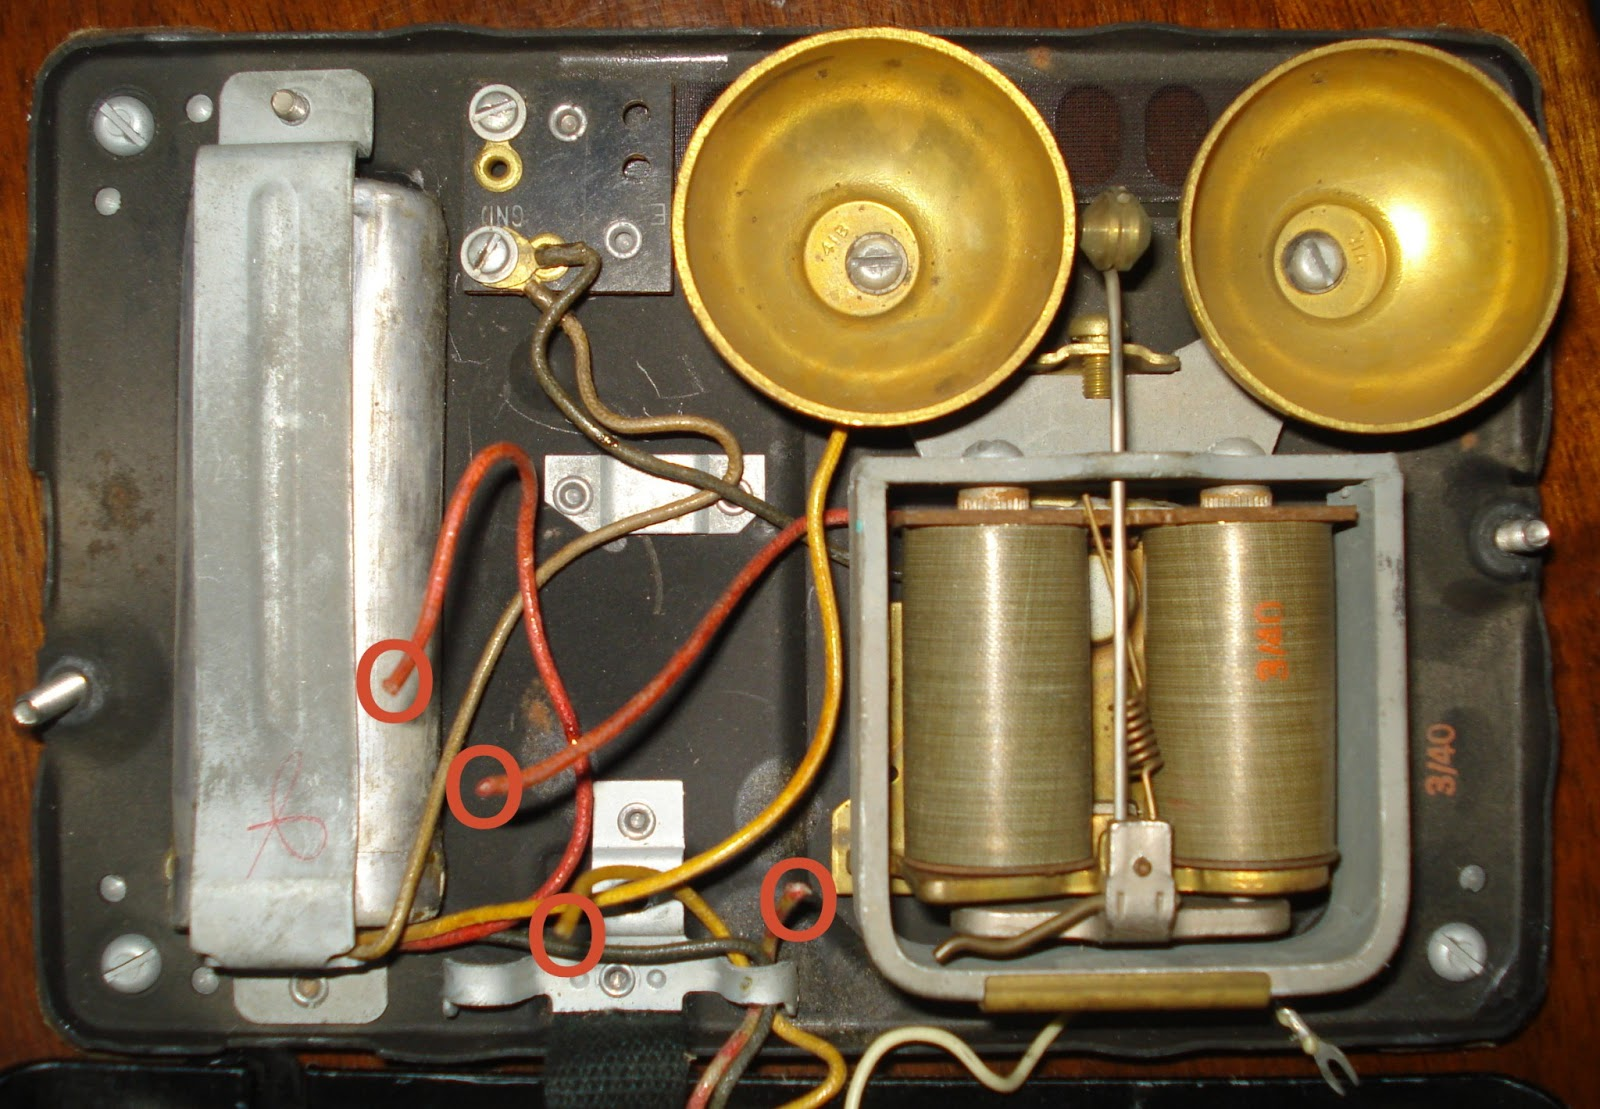 [SCHEMATICS_4US]  Can you help me to rewire this very old telephone? - telephones wiring  electricity | Ask MetaFilter | Vintage Telephone Wiring Diagram |  | Ask MetaFilter